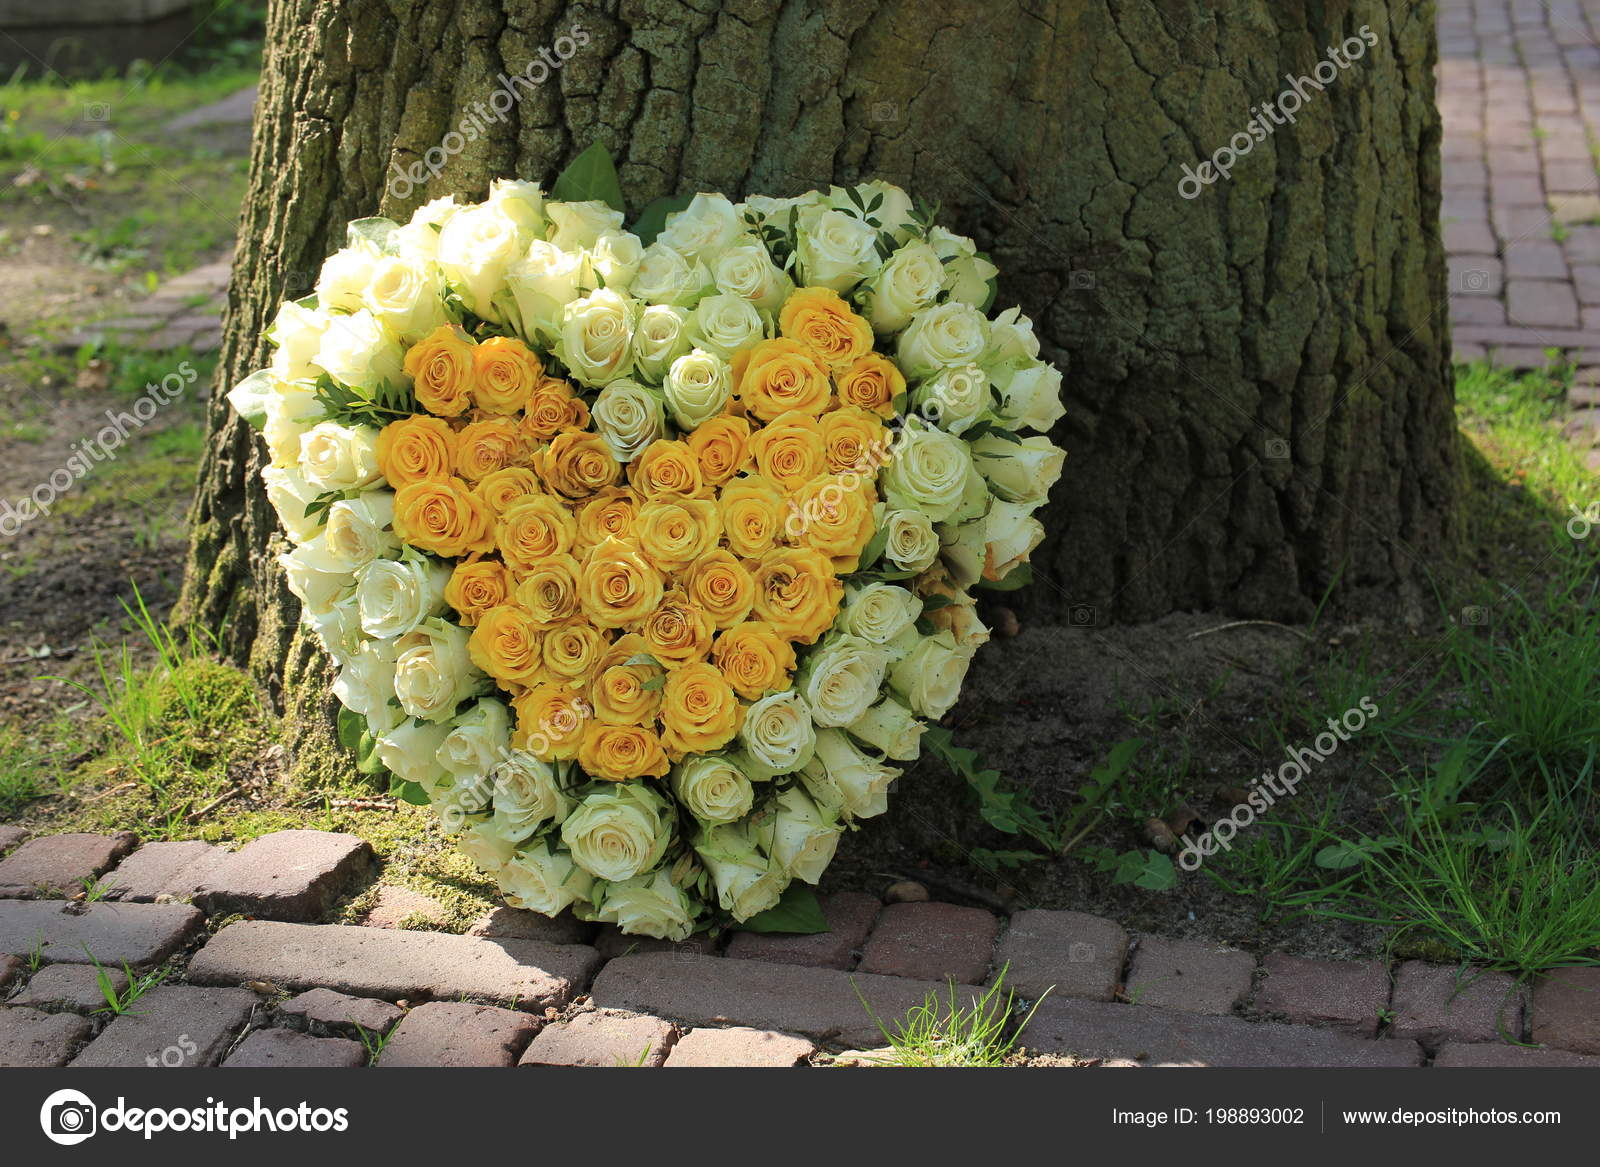 Heart shaped sympathy flowers funeral flowers tree white yellow heart shaped sympathy flowers funeral flowers tree white yellow roses stock photo izmirmasajfo